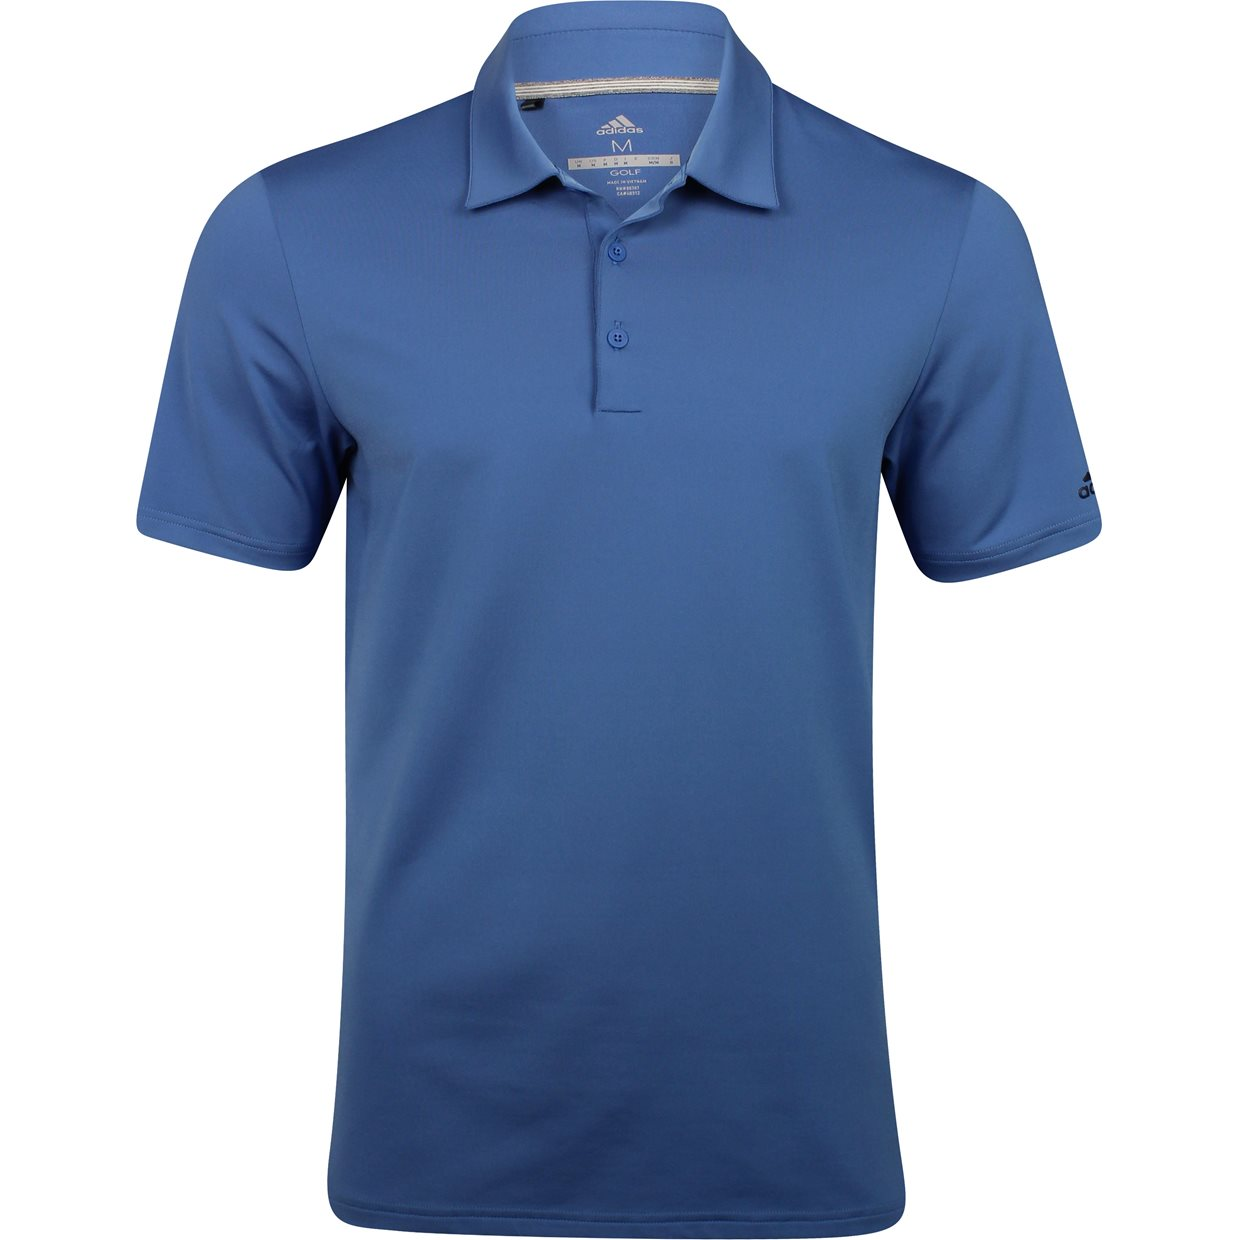 Adidas Ultimate 365 Solid Shirt Apparel At Globalgolf